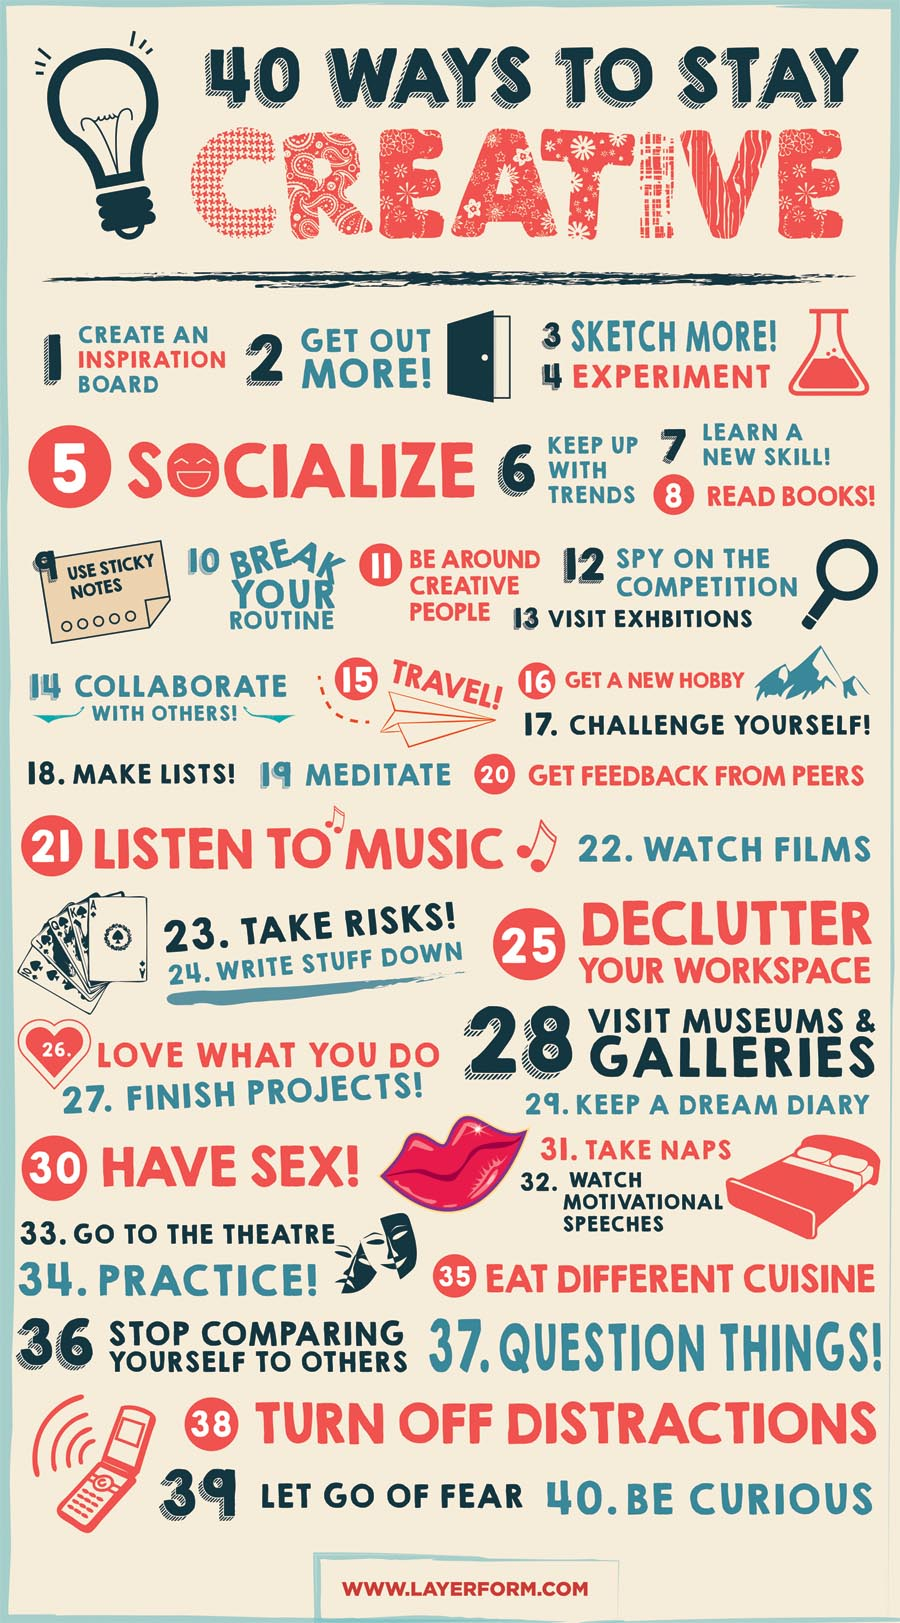 Infographic: 40 ways to stay creative